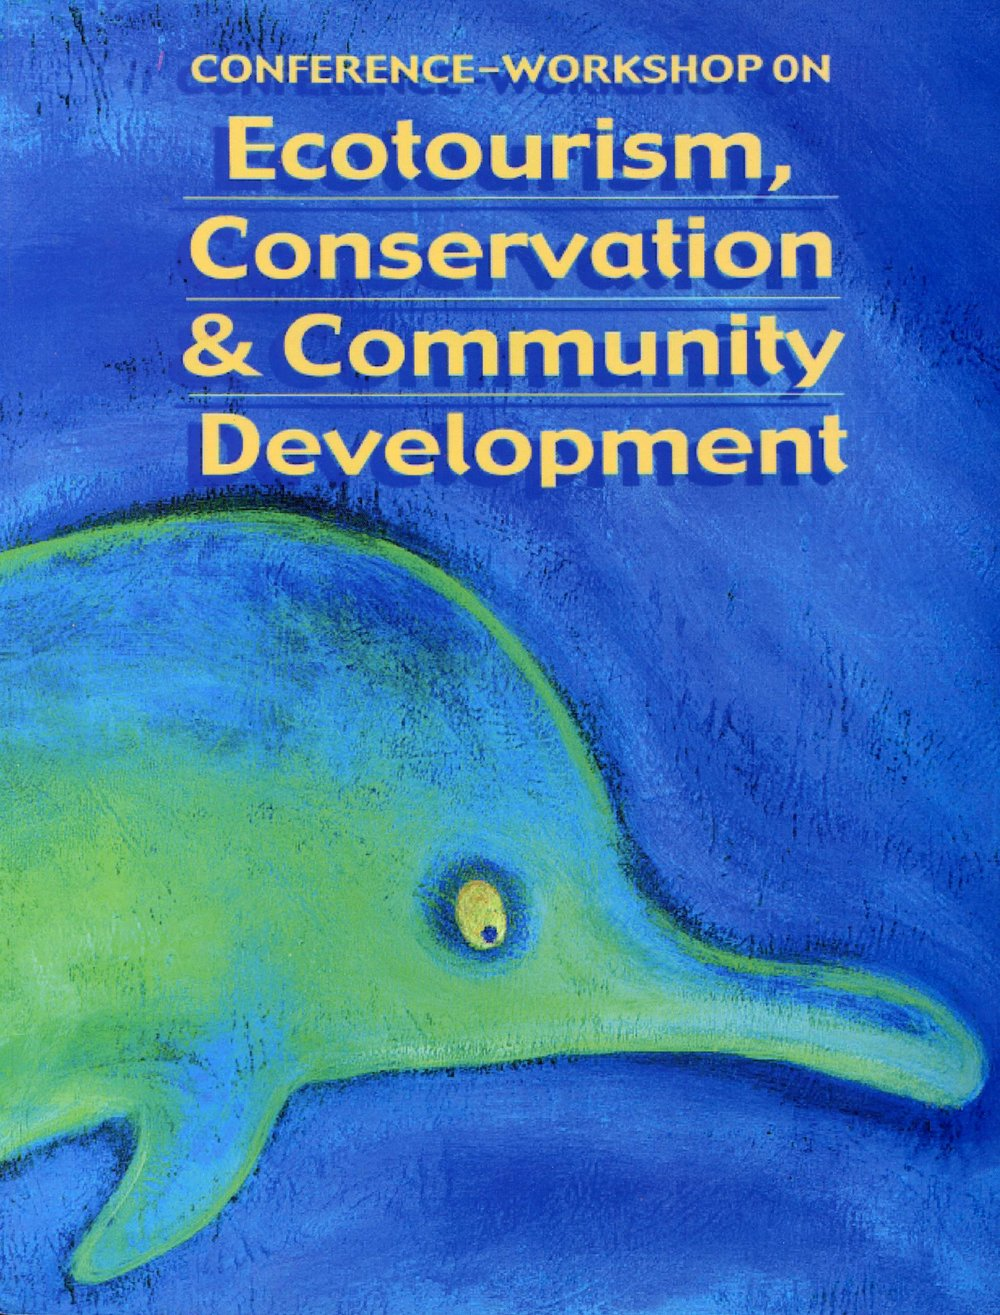 Publication coordinator, editor and conference facilitator  VSO, ASSET, AIT, CI and NIPA (1999)  Ecotourism, Conservation and Community Development. Conference proceedings.  VSO, Accessing Support Services for Entrepreneurial Technology, Asian Institute of Tourism, Conservation International - Philippines, NGOs for Protected Areas: Philippines.